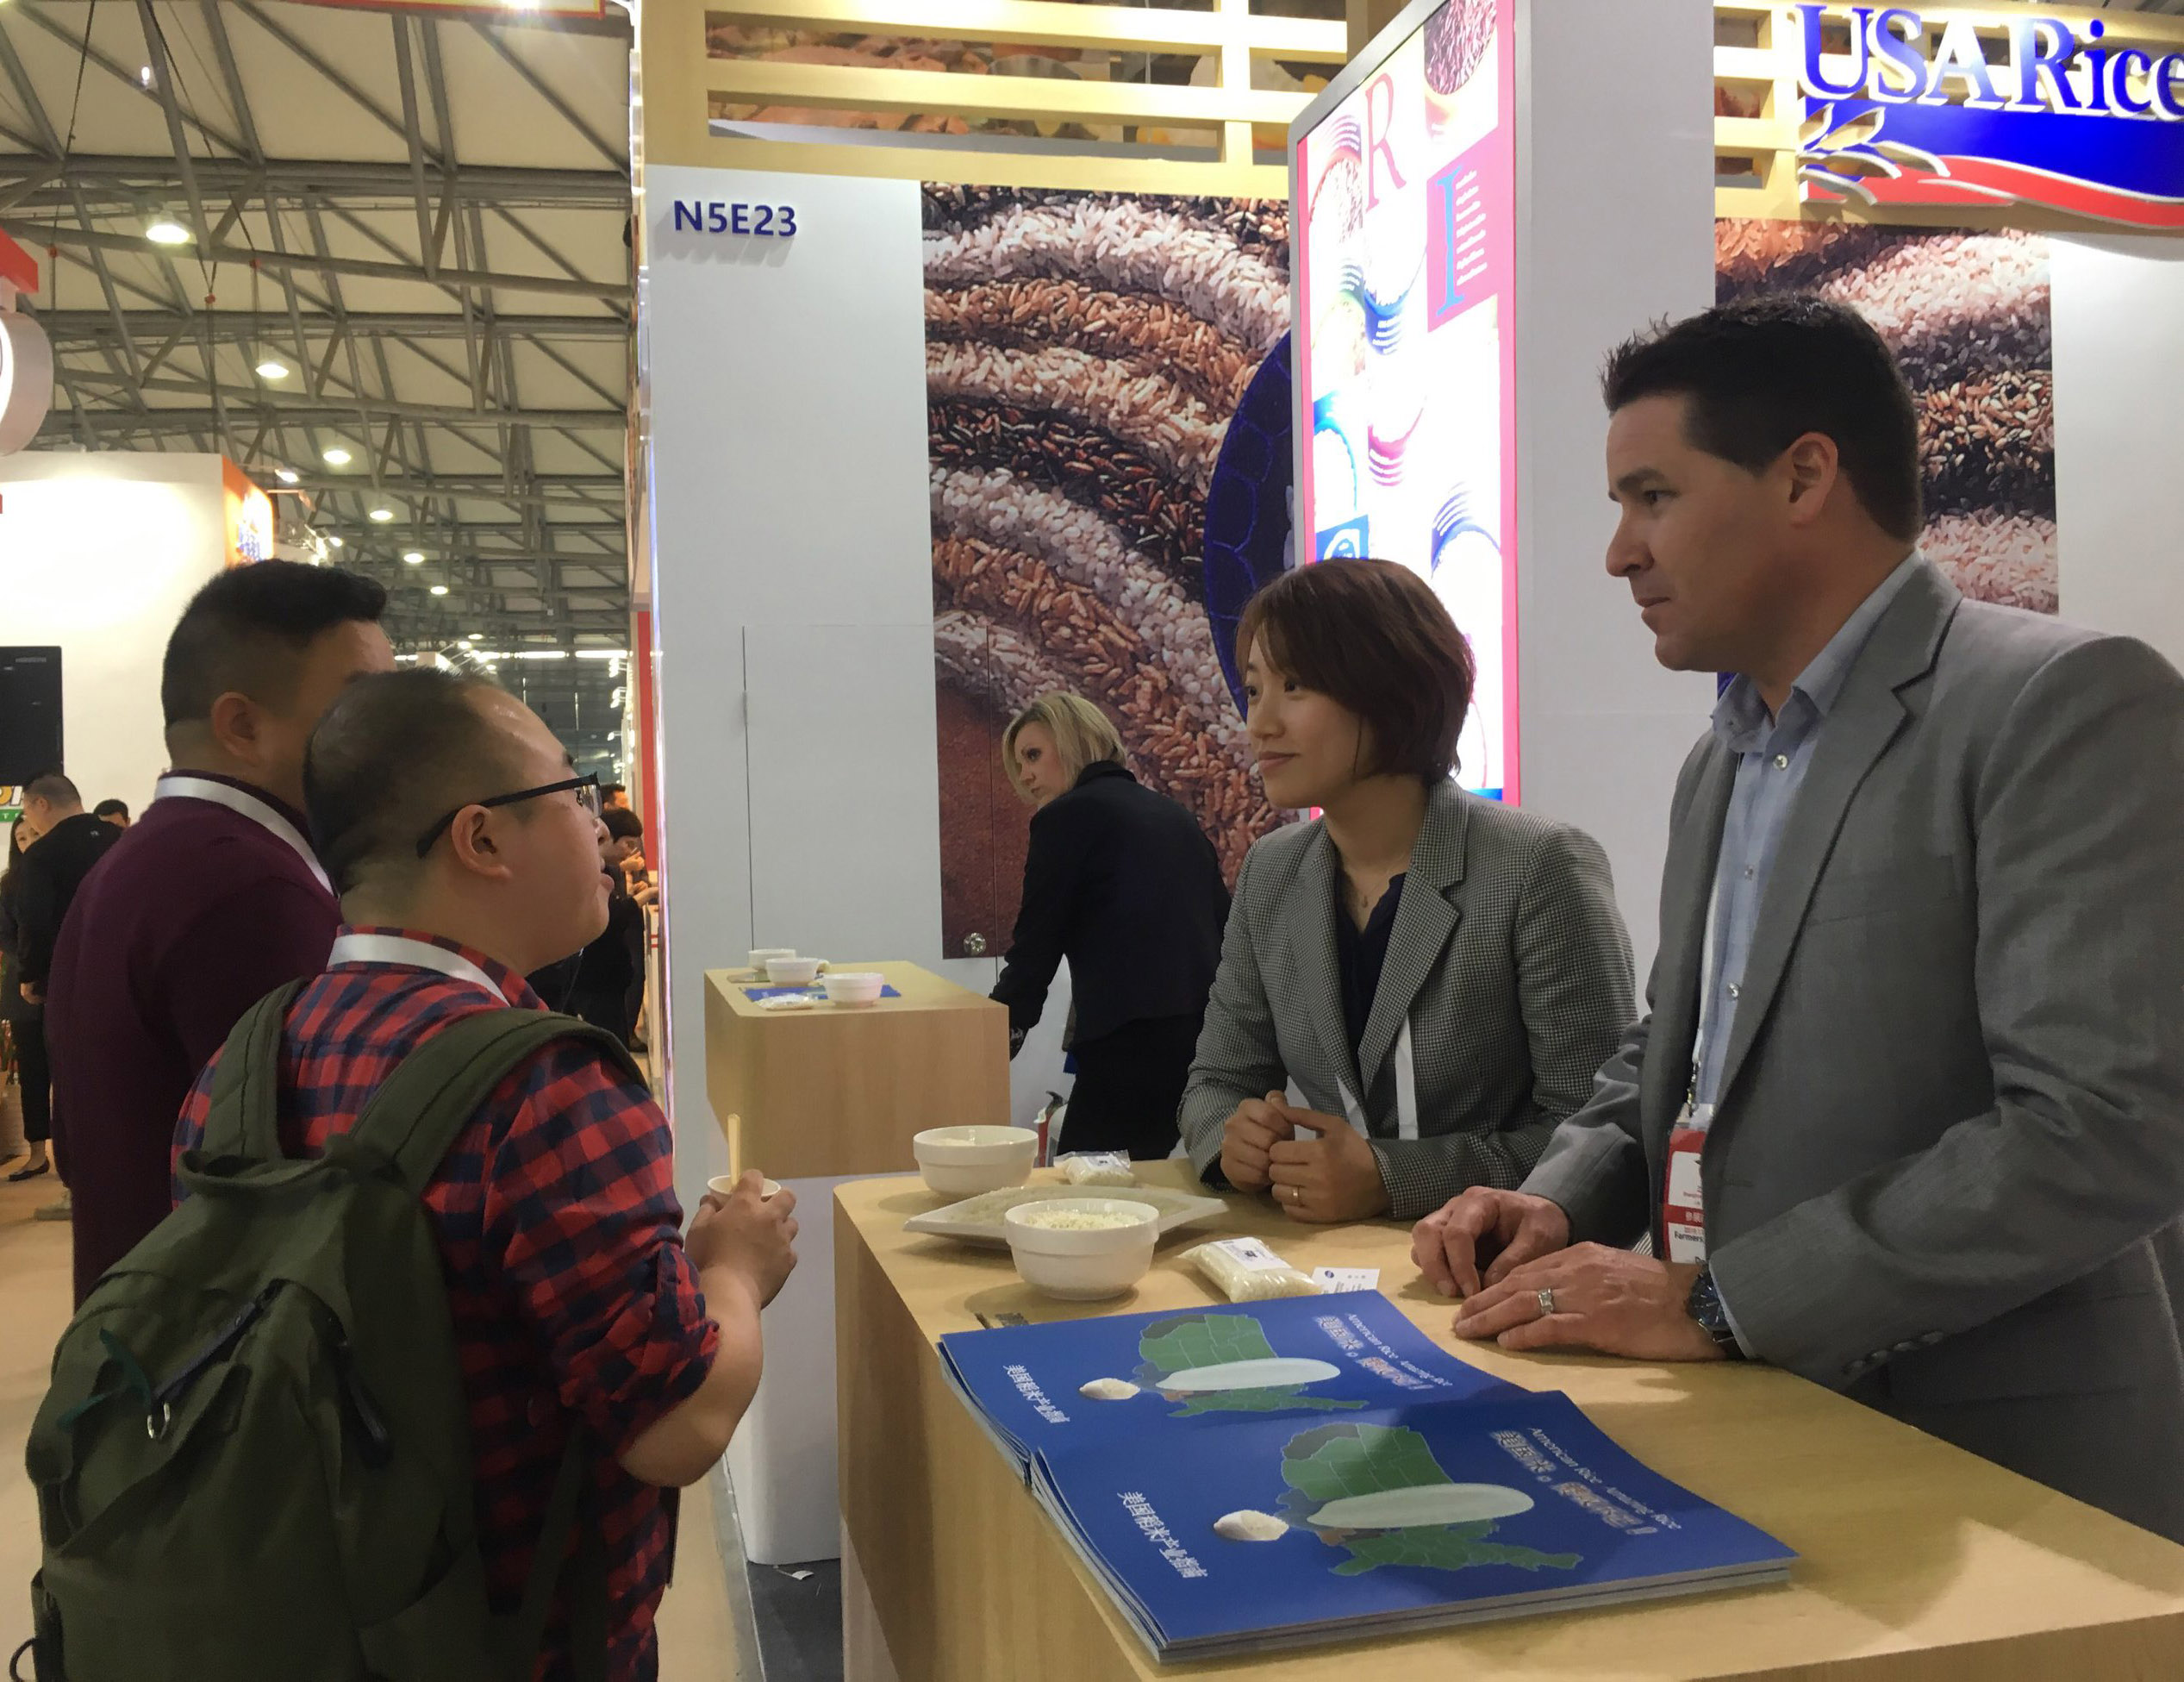 People gather at a trade show booth, standing around a table filled with rice bowls and pamphlets